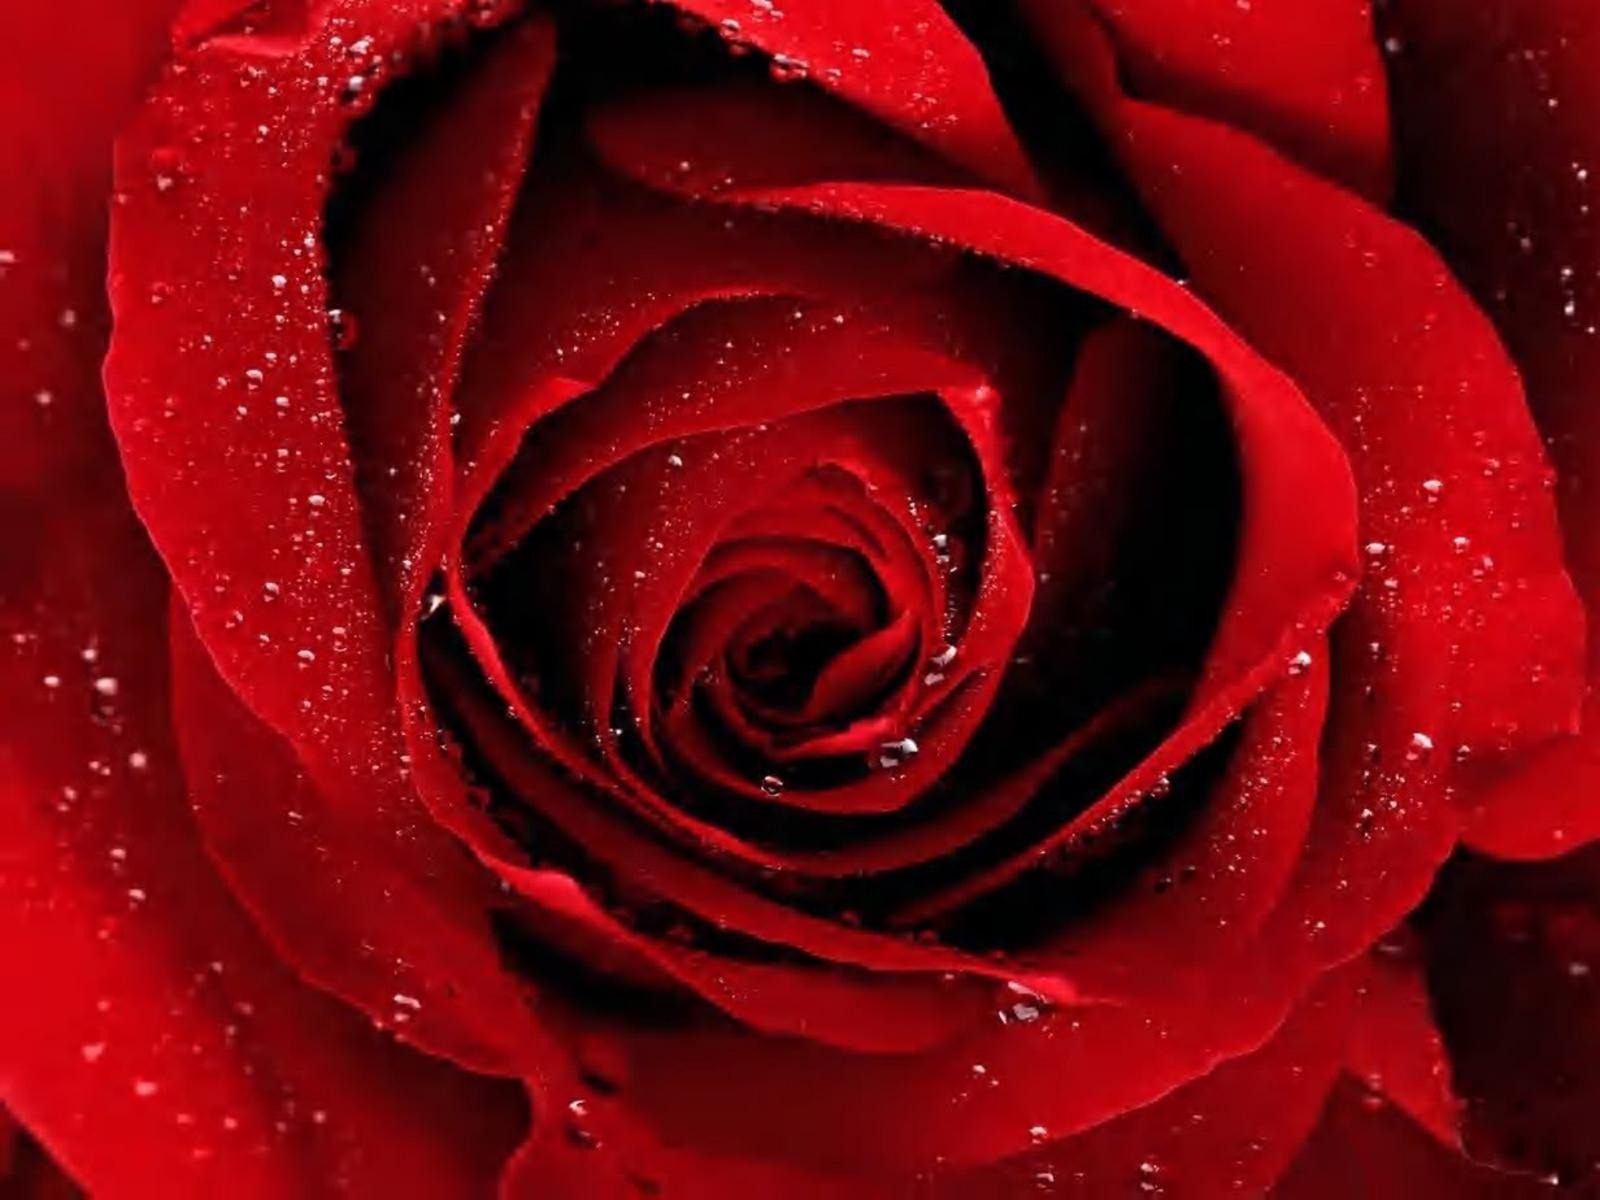 Red Rose Black Backgrounds